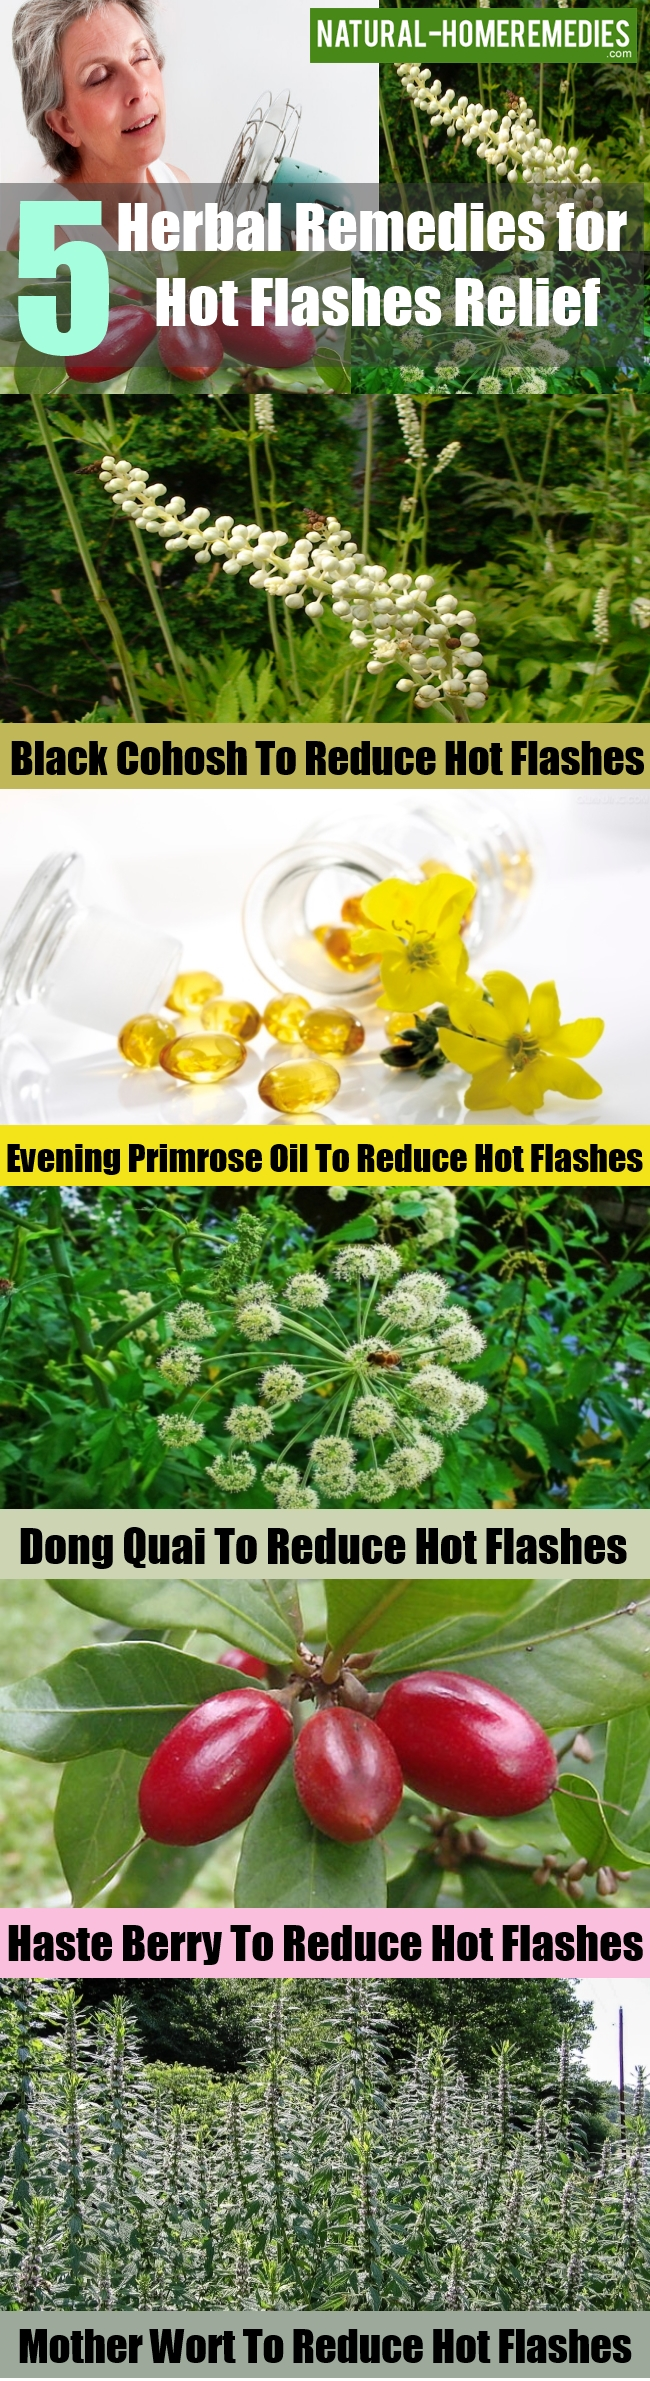 Herbal Remedies for Hot Flashes Relief